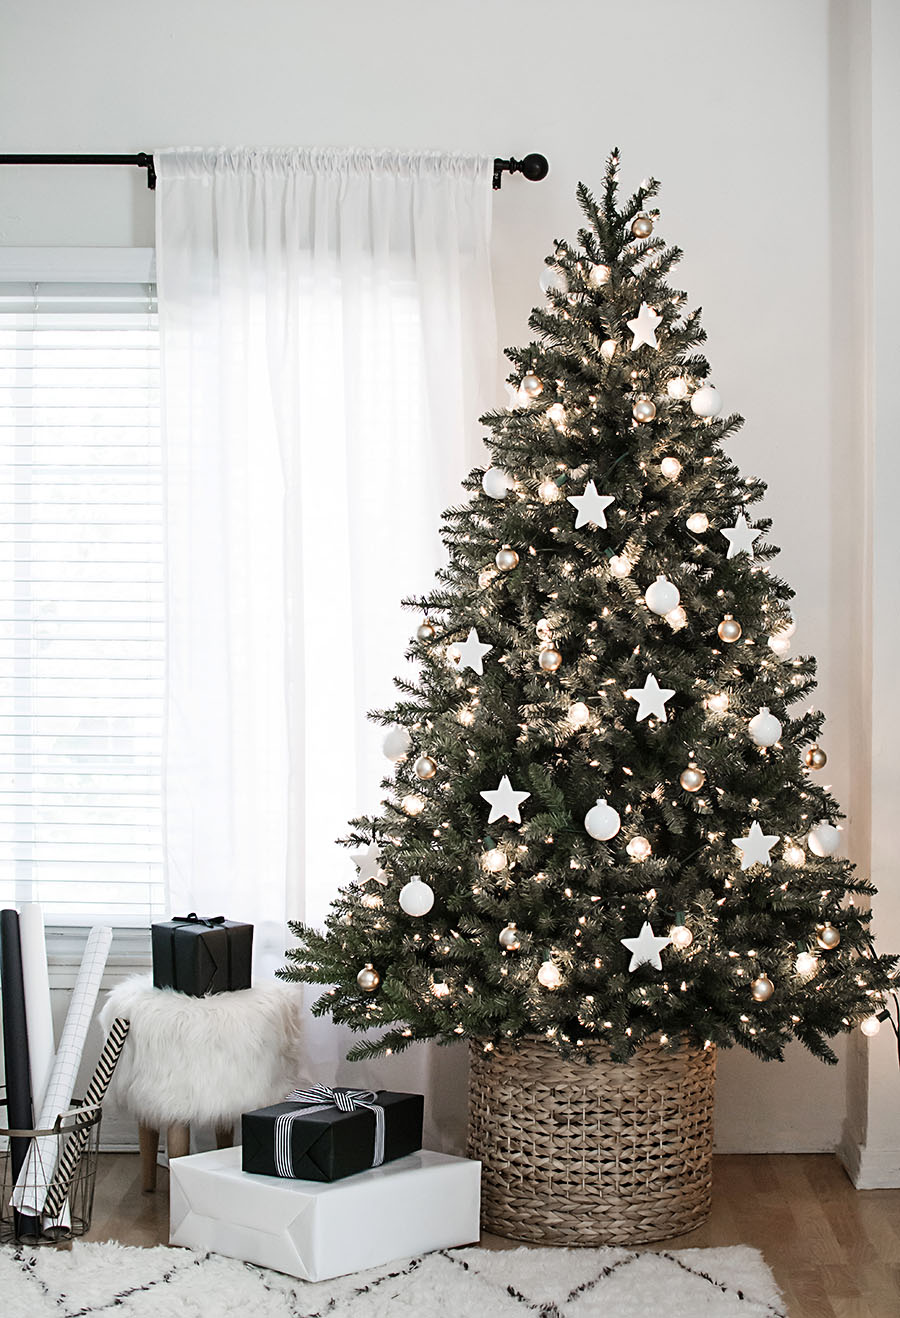 Modern Neutral Christmas Tree with DIY Clay Star Ornaments {Christmas Tree Inspiration Roundup} - Stevie Storck Design Co.